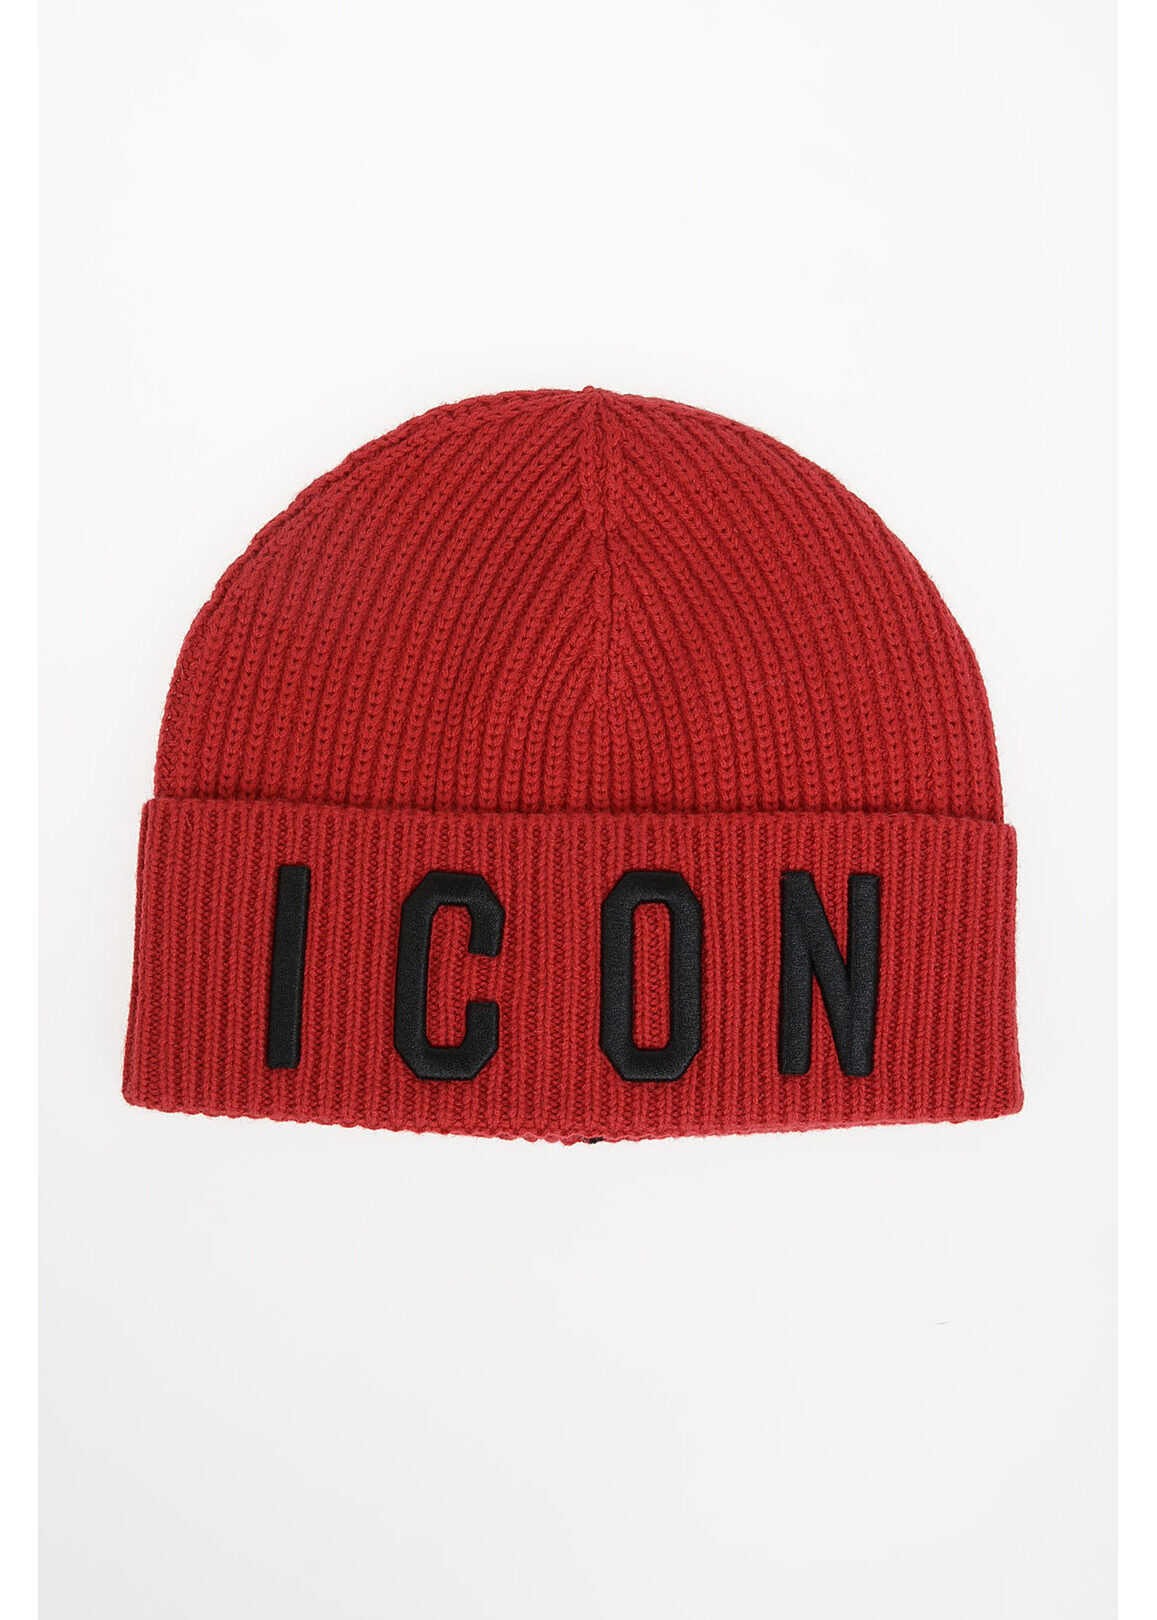 Dsquared2 Kids knit ICON Beanie RED